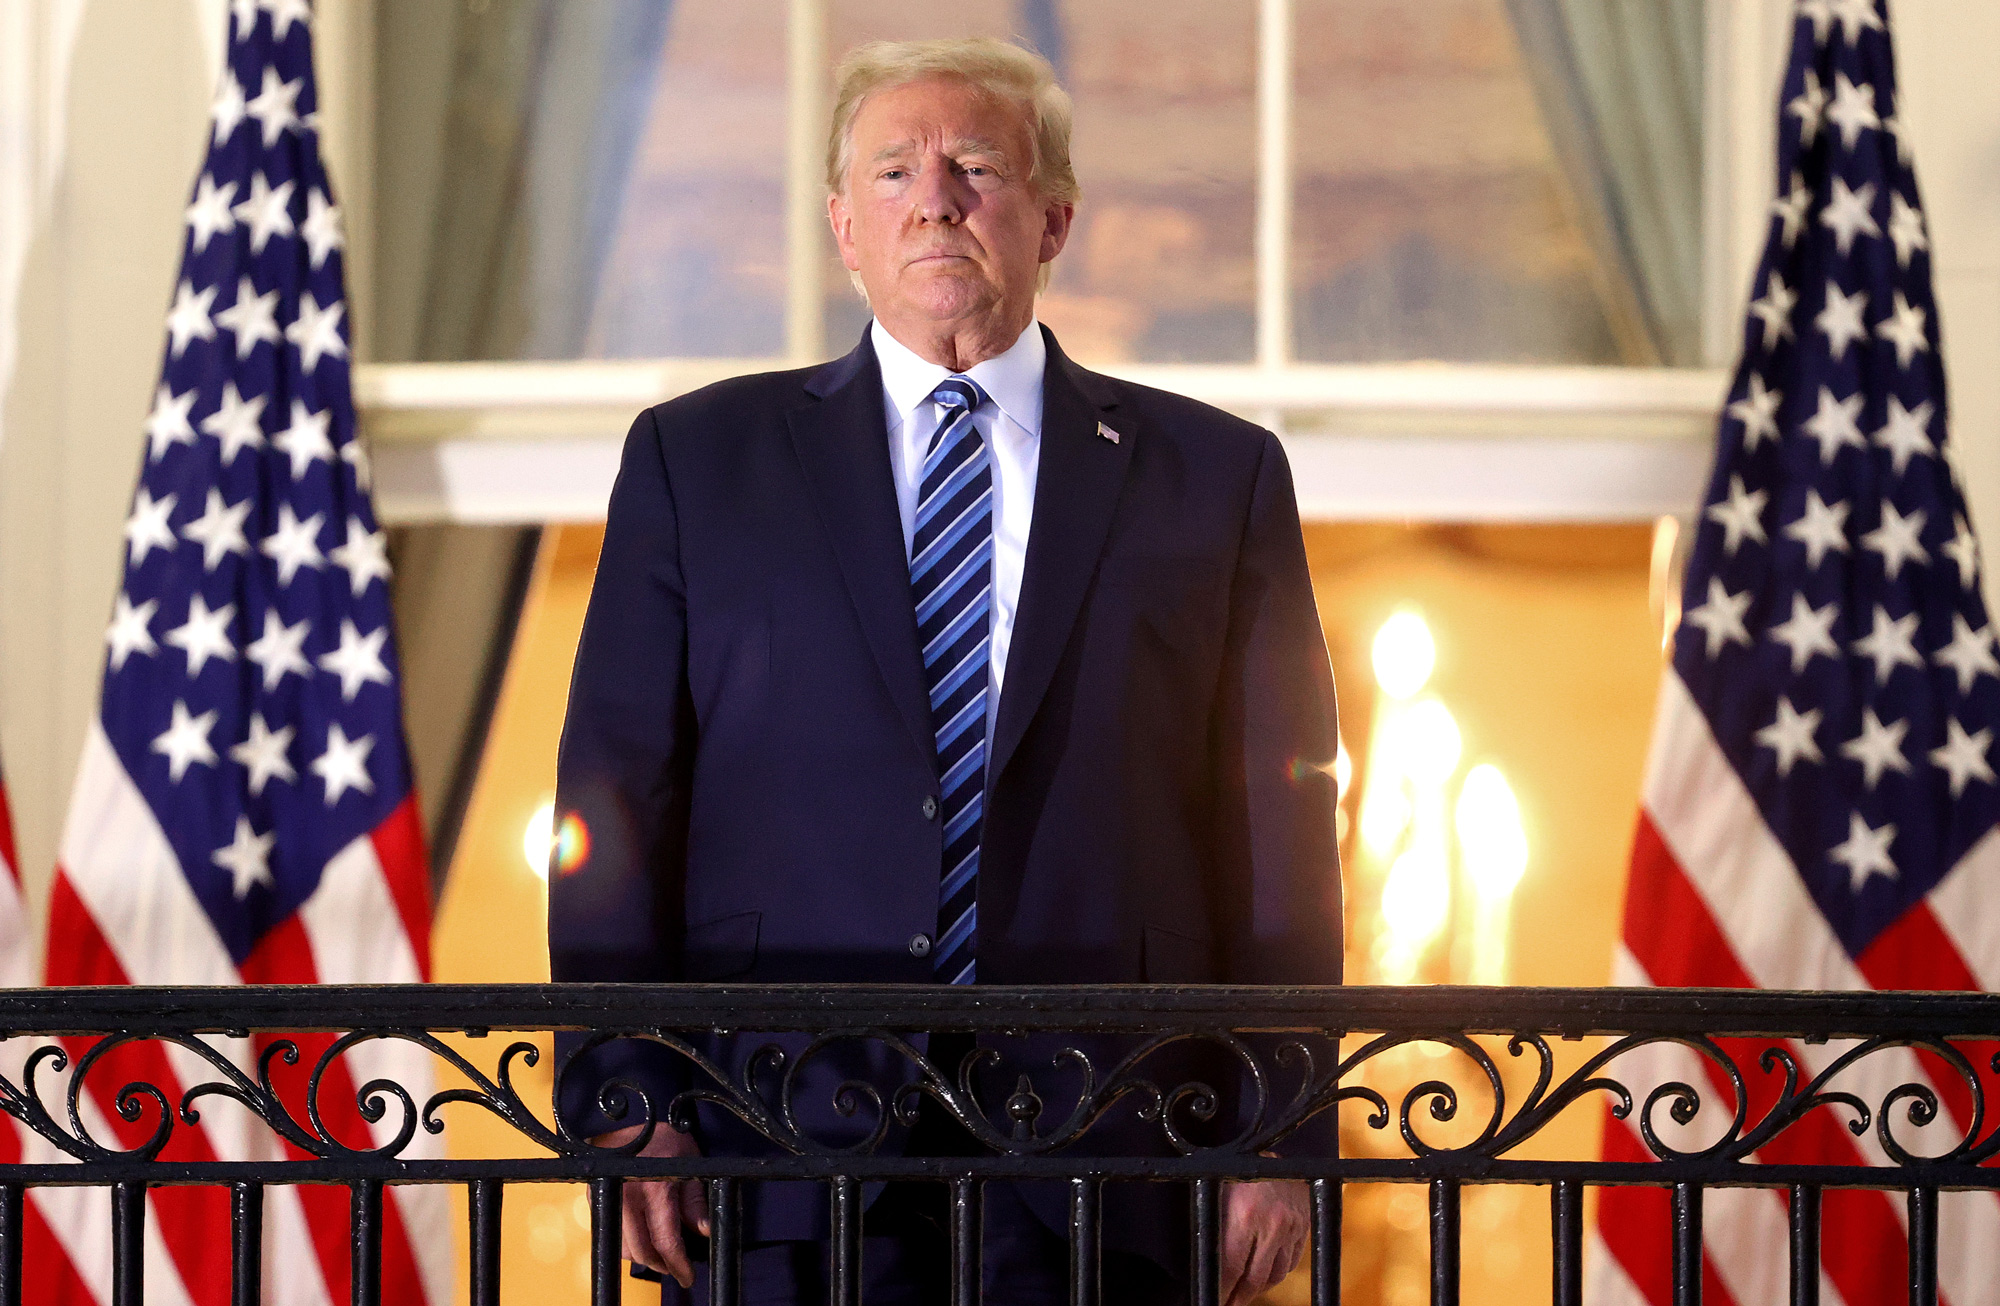 President Donald Trump stands on the Truman Balcony after returning to the White House from Walter Reed National Military Medical Center on October 5 in Washington, DC.